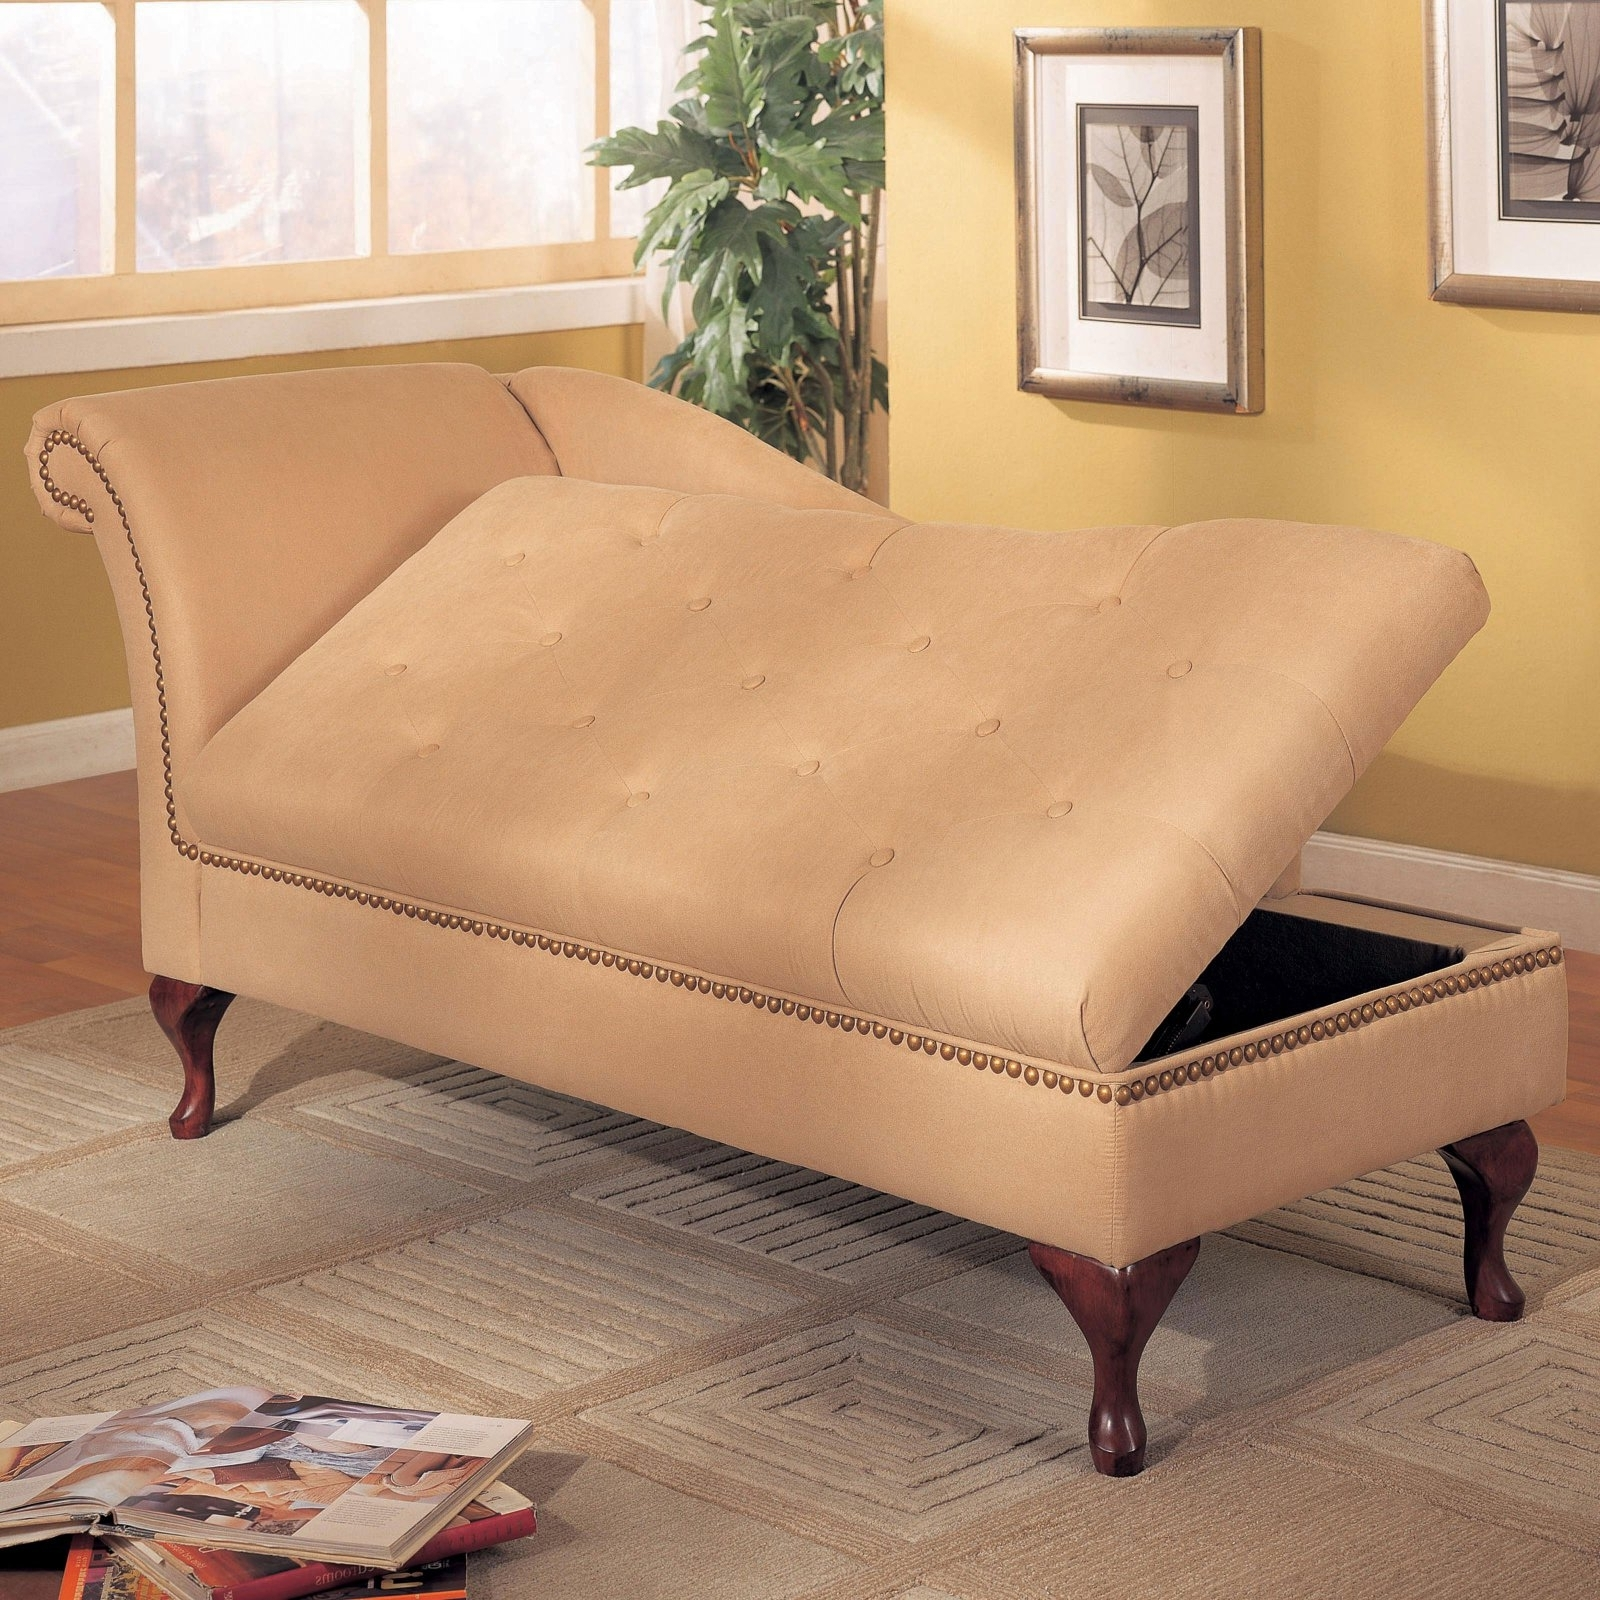 Preferred Small Chaise Lounge Chair For Room Awesome Bedroom Chairs Ideas In Bedroom Chaise Lounge Chairs (View 14 of 15)